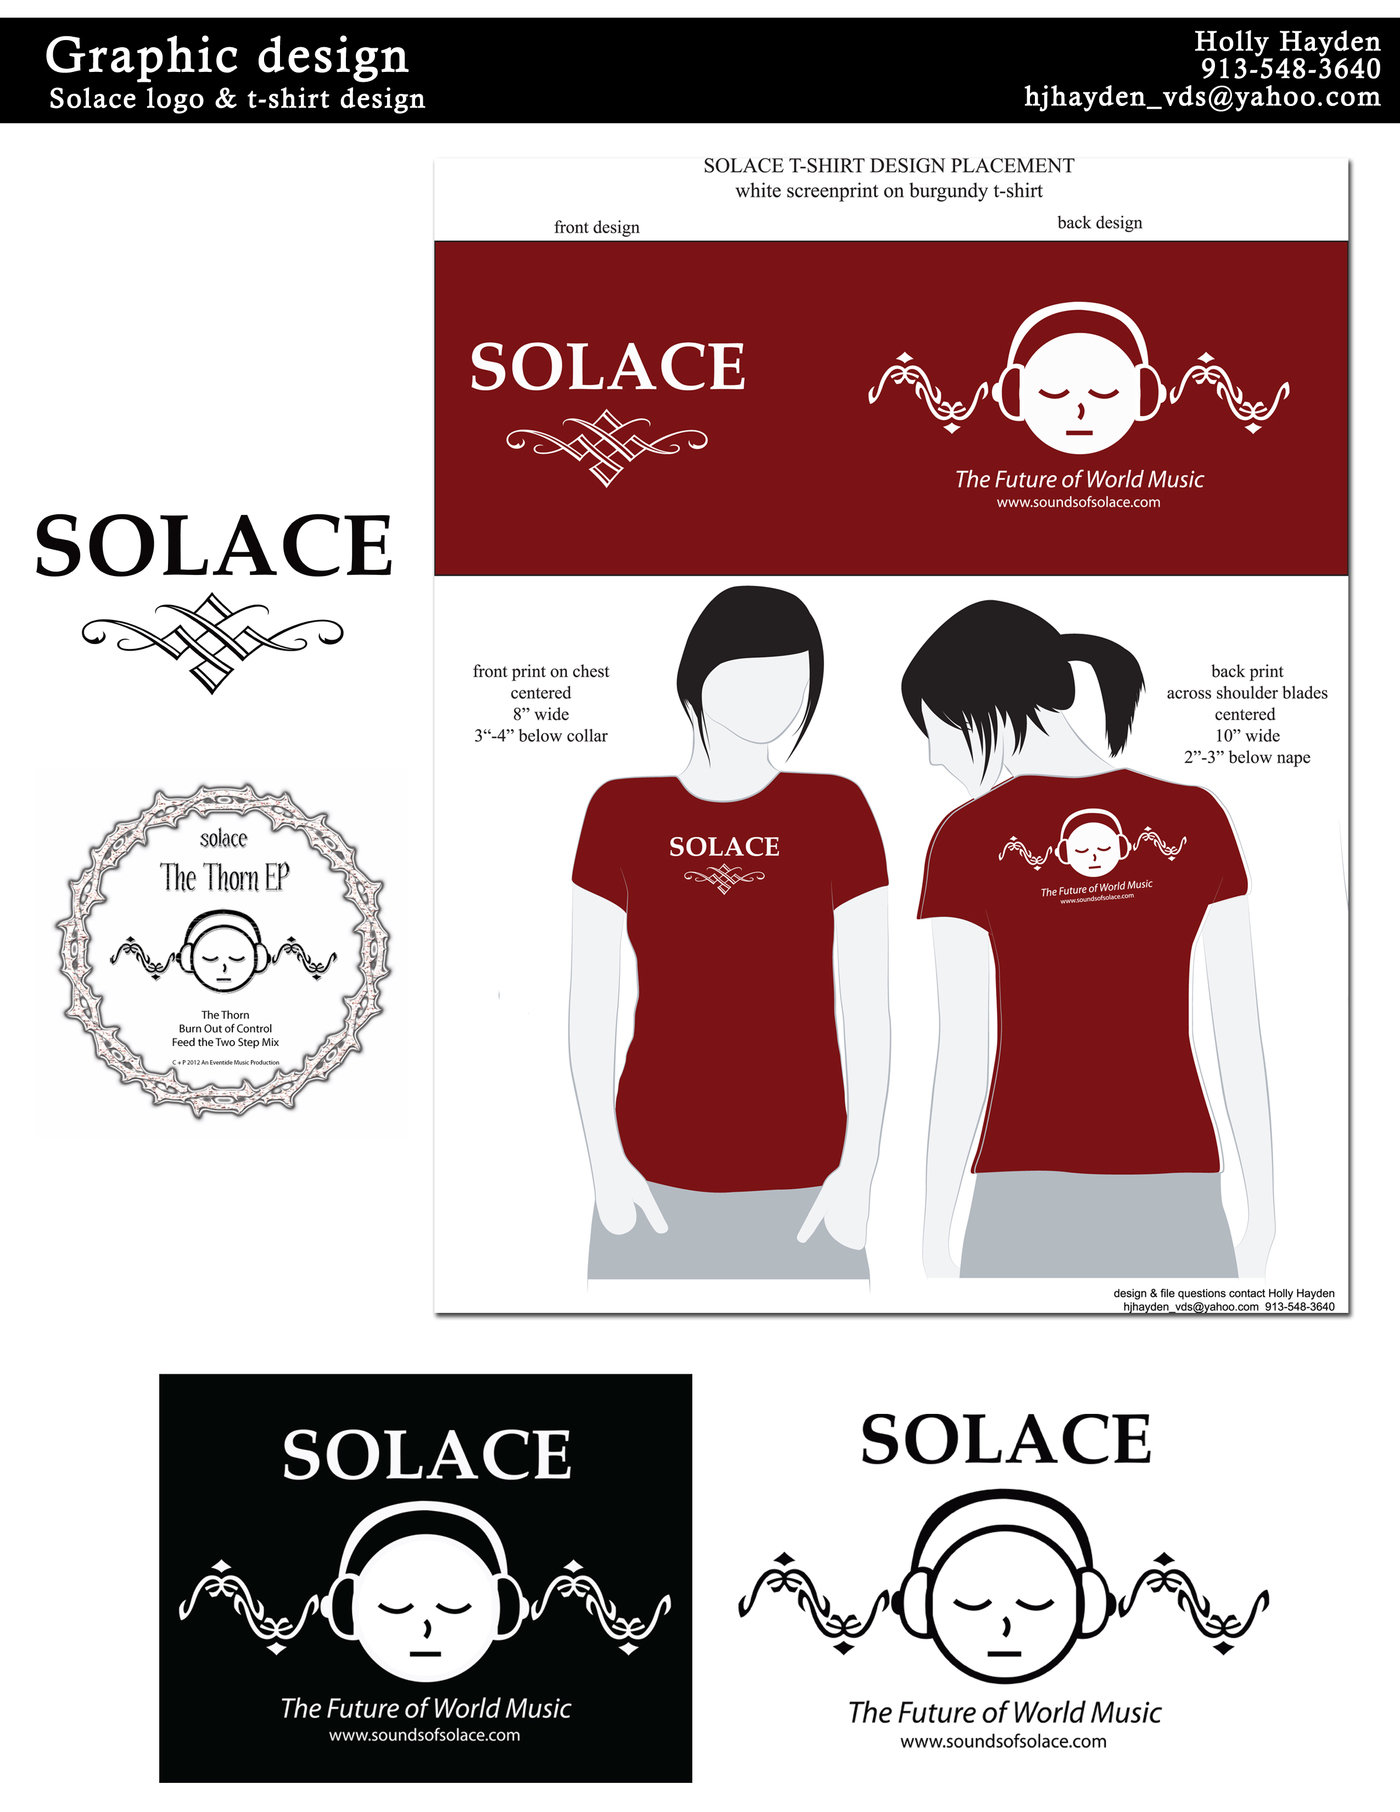 Design Placement On Back Of Tshirt With Htv T Shirt Dimensions For